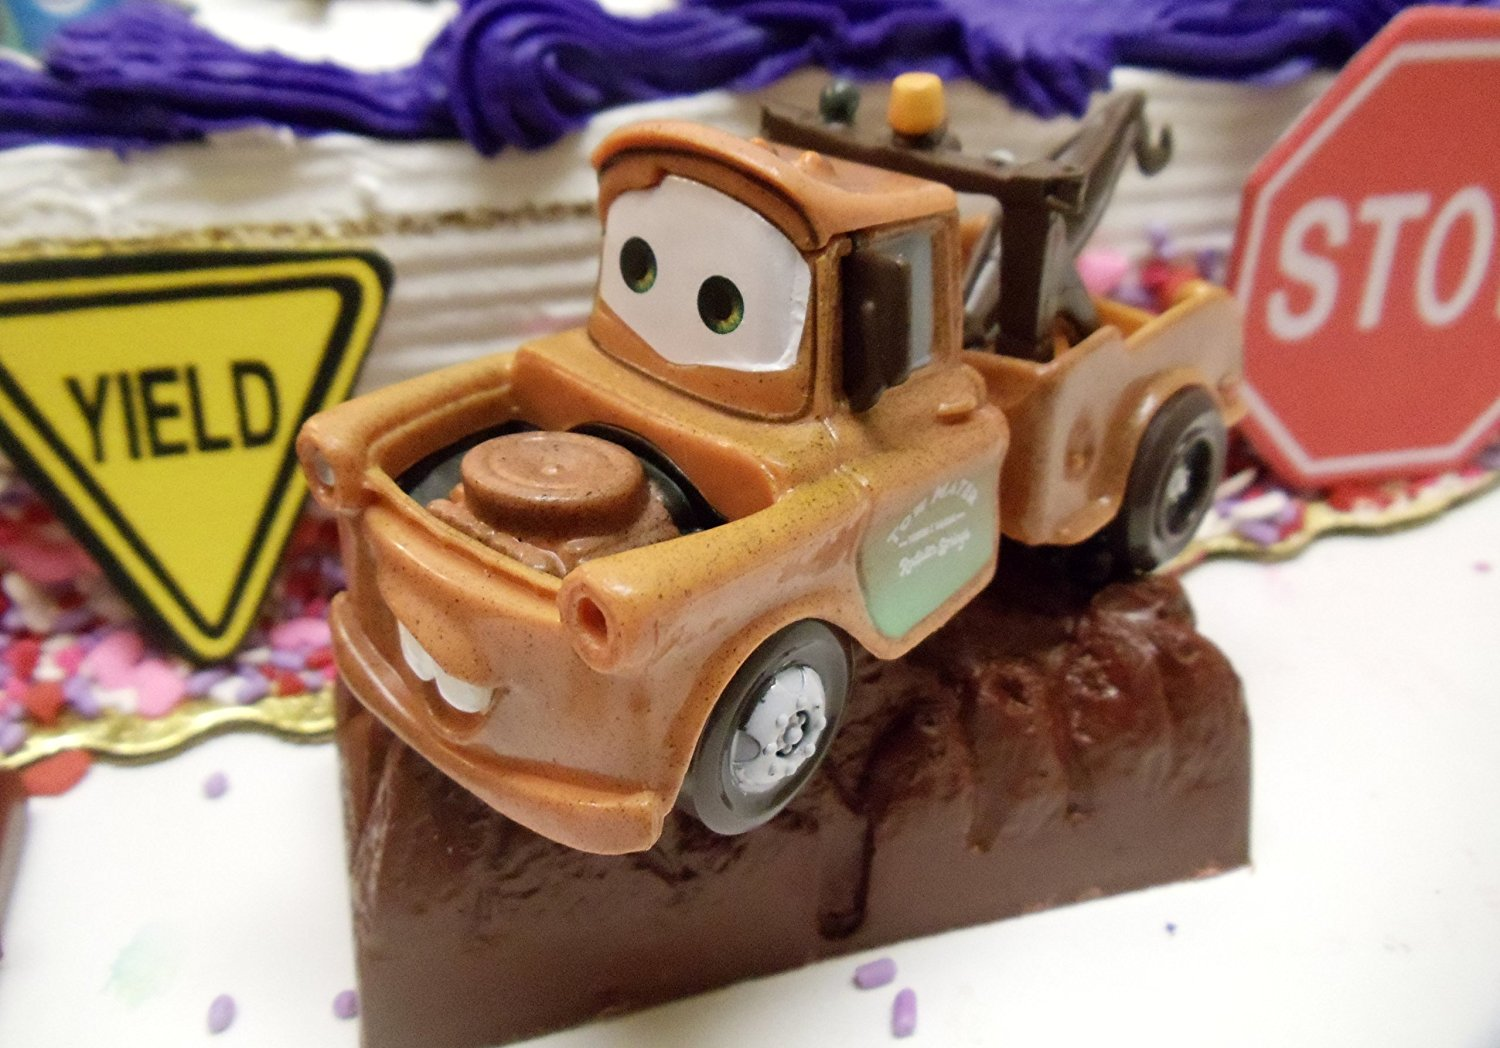 Superb Cars 14 Piece Birthday Cake Topper Set Featuring Tow Mater Sarge Funny Birthday Cards Online Bapapcheapnameinfo